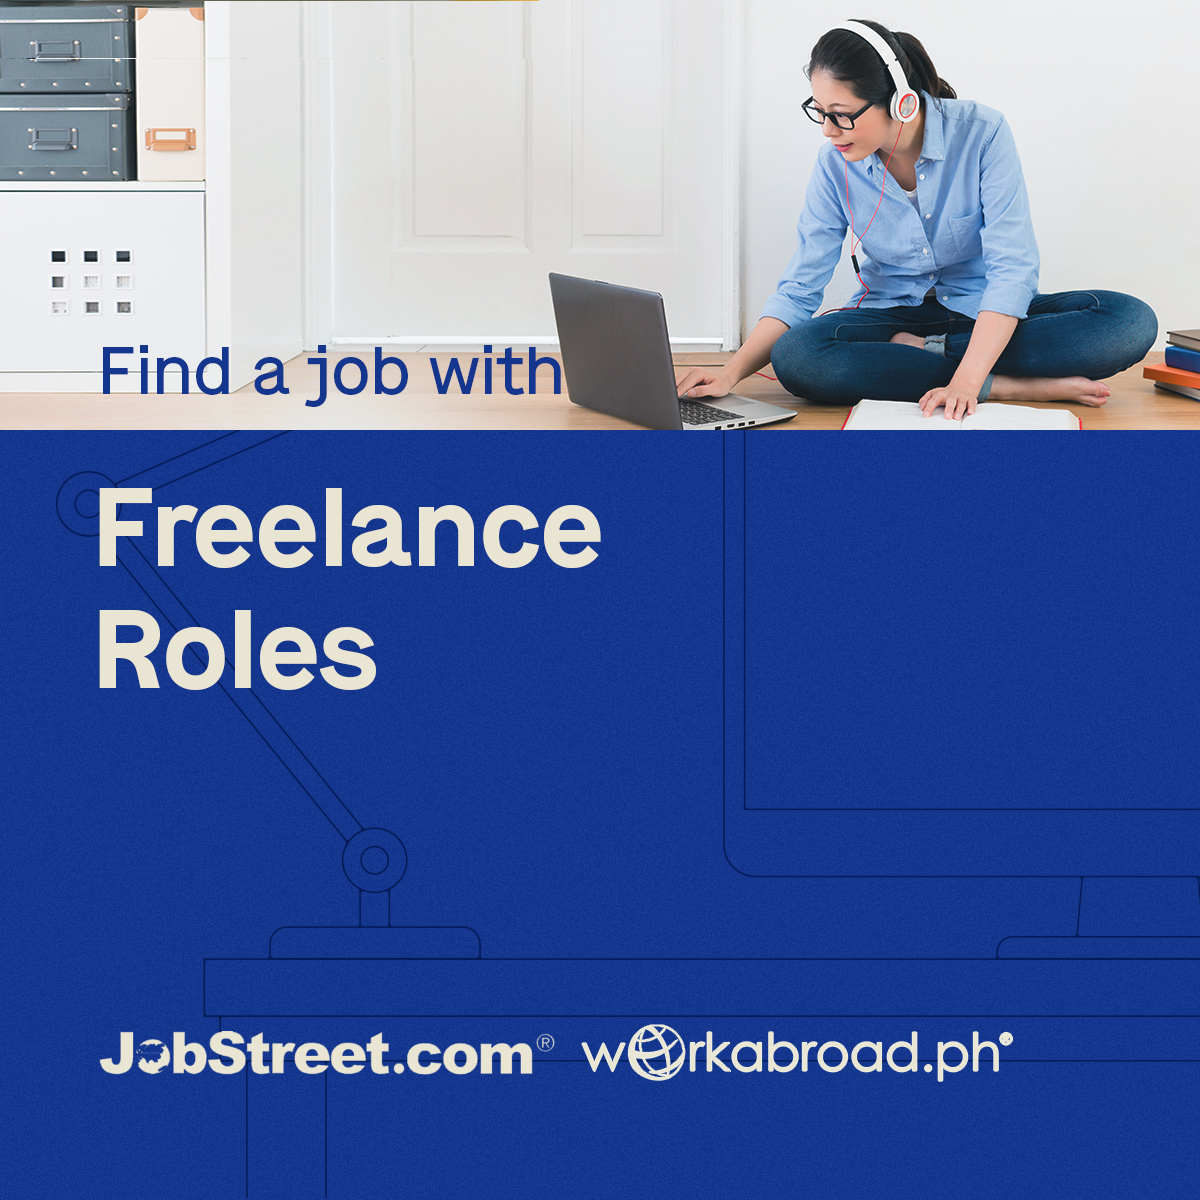 Jobstreet Philippines On Twitter How To Apply For A Sanaol Job Click Any Of These Links No Work Experience Https T Co Nmmsmaqav7 High School Graduate Https T Co Zvfnnrfnnn Want To Work From Home Https T Co Ubvrbupddz A Freelance